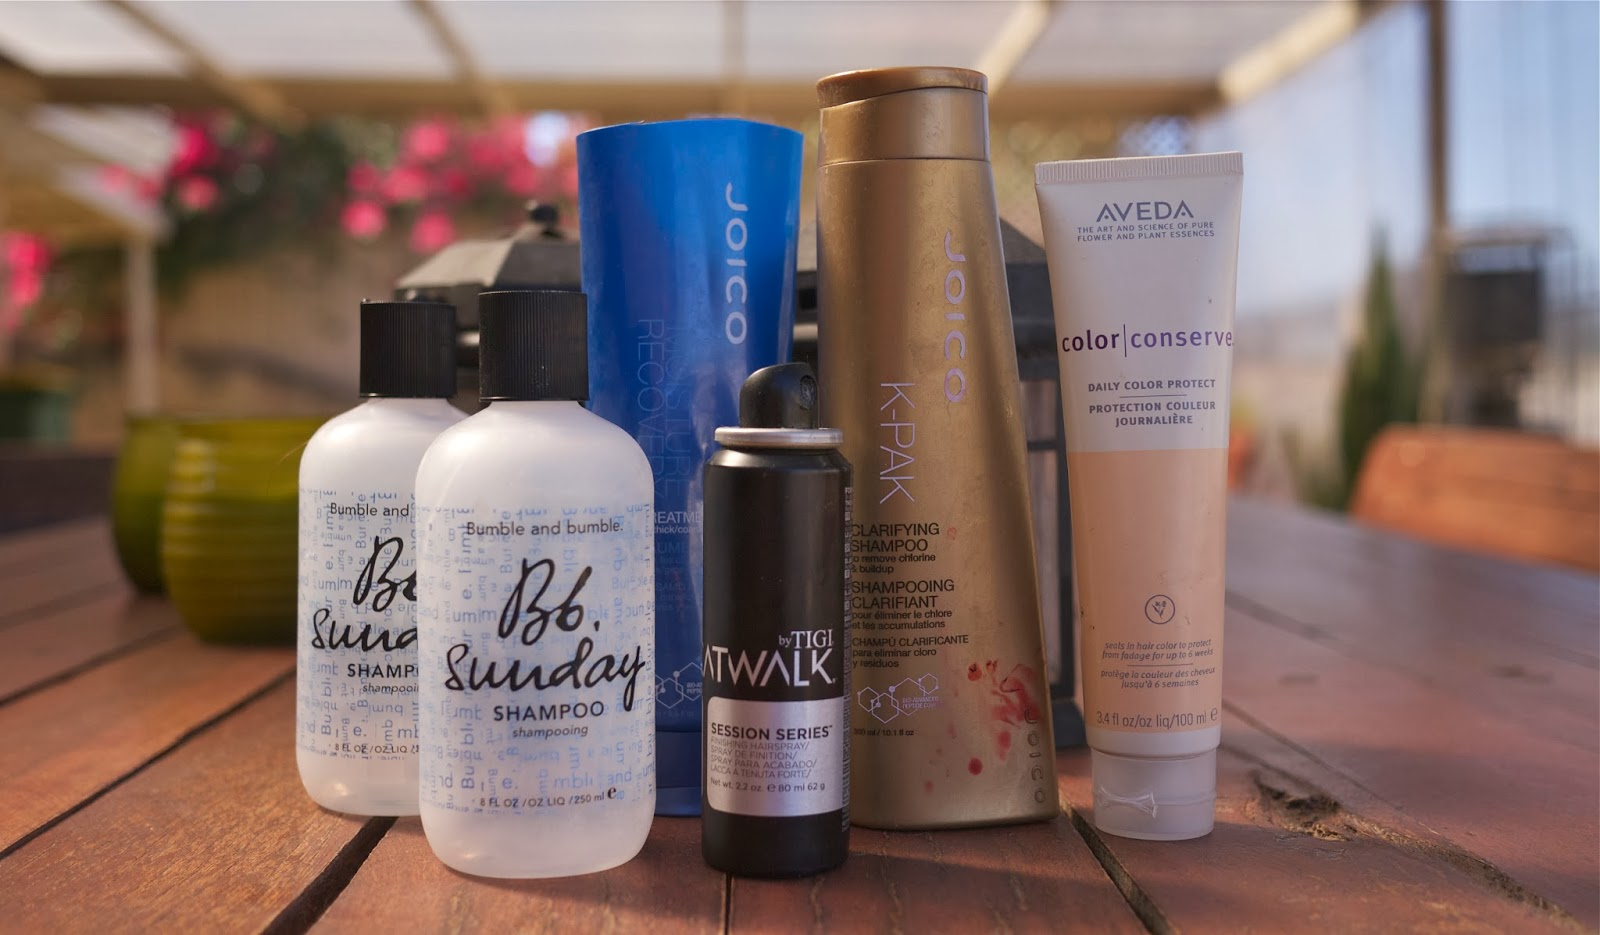 Born to Buy: Emptying the Trash | February - March 2014 Empties